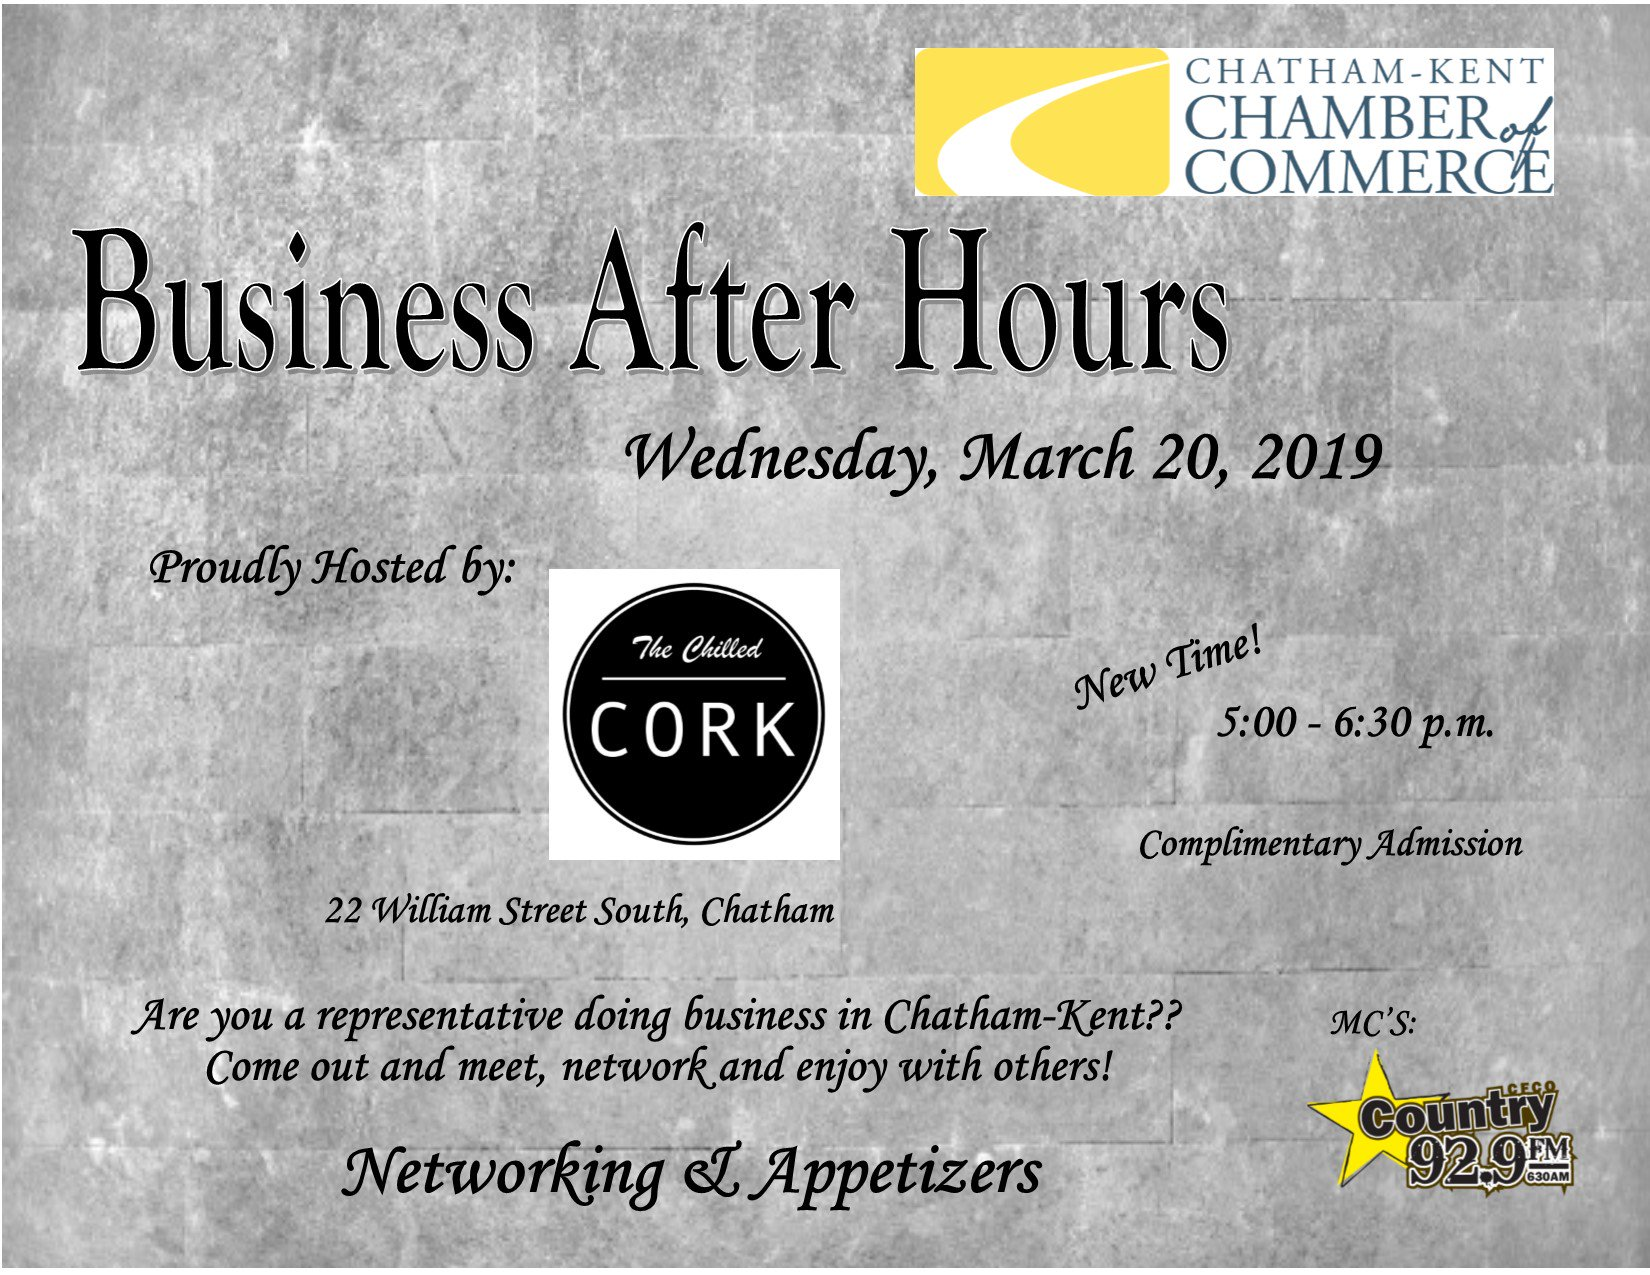 CK Chamber of Commerce Business After Hours (March 2019) @ The Chilled Cork